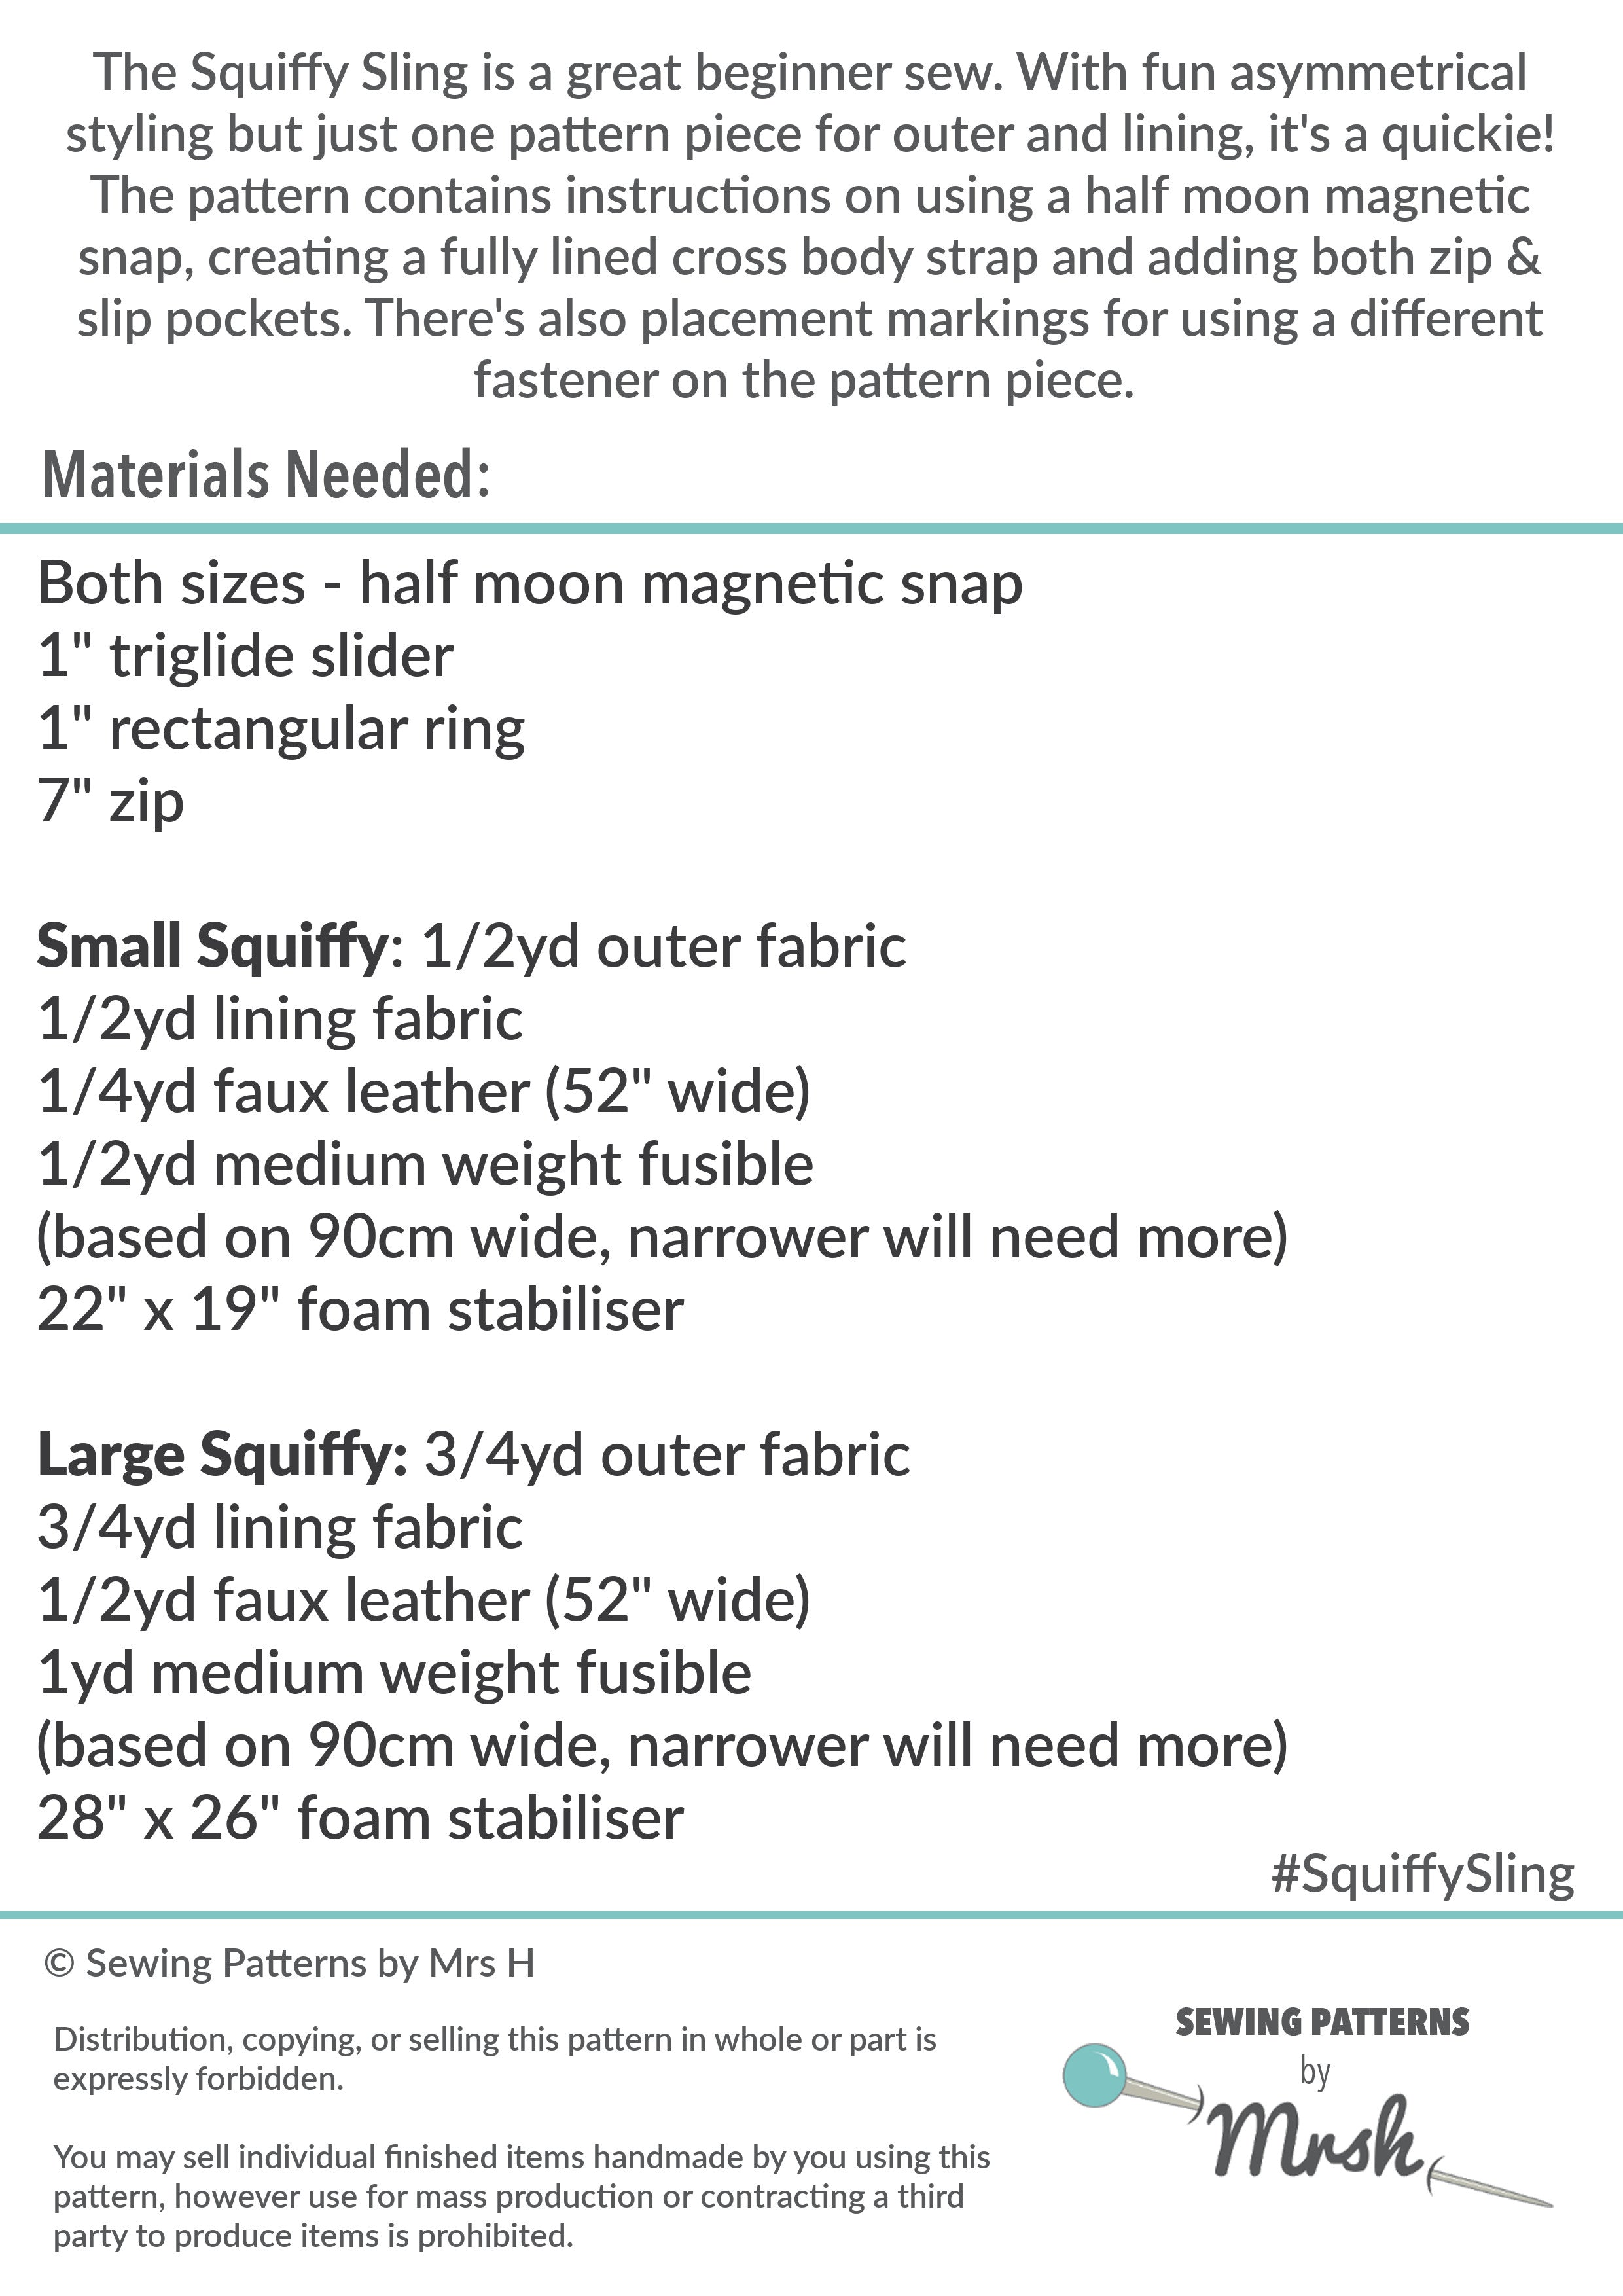 The Squiffy Sling By Sewing Patterns By Mrs H Printed Paper Pattern